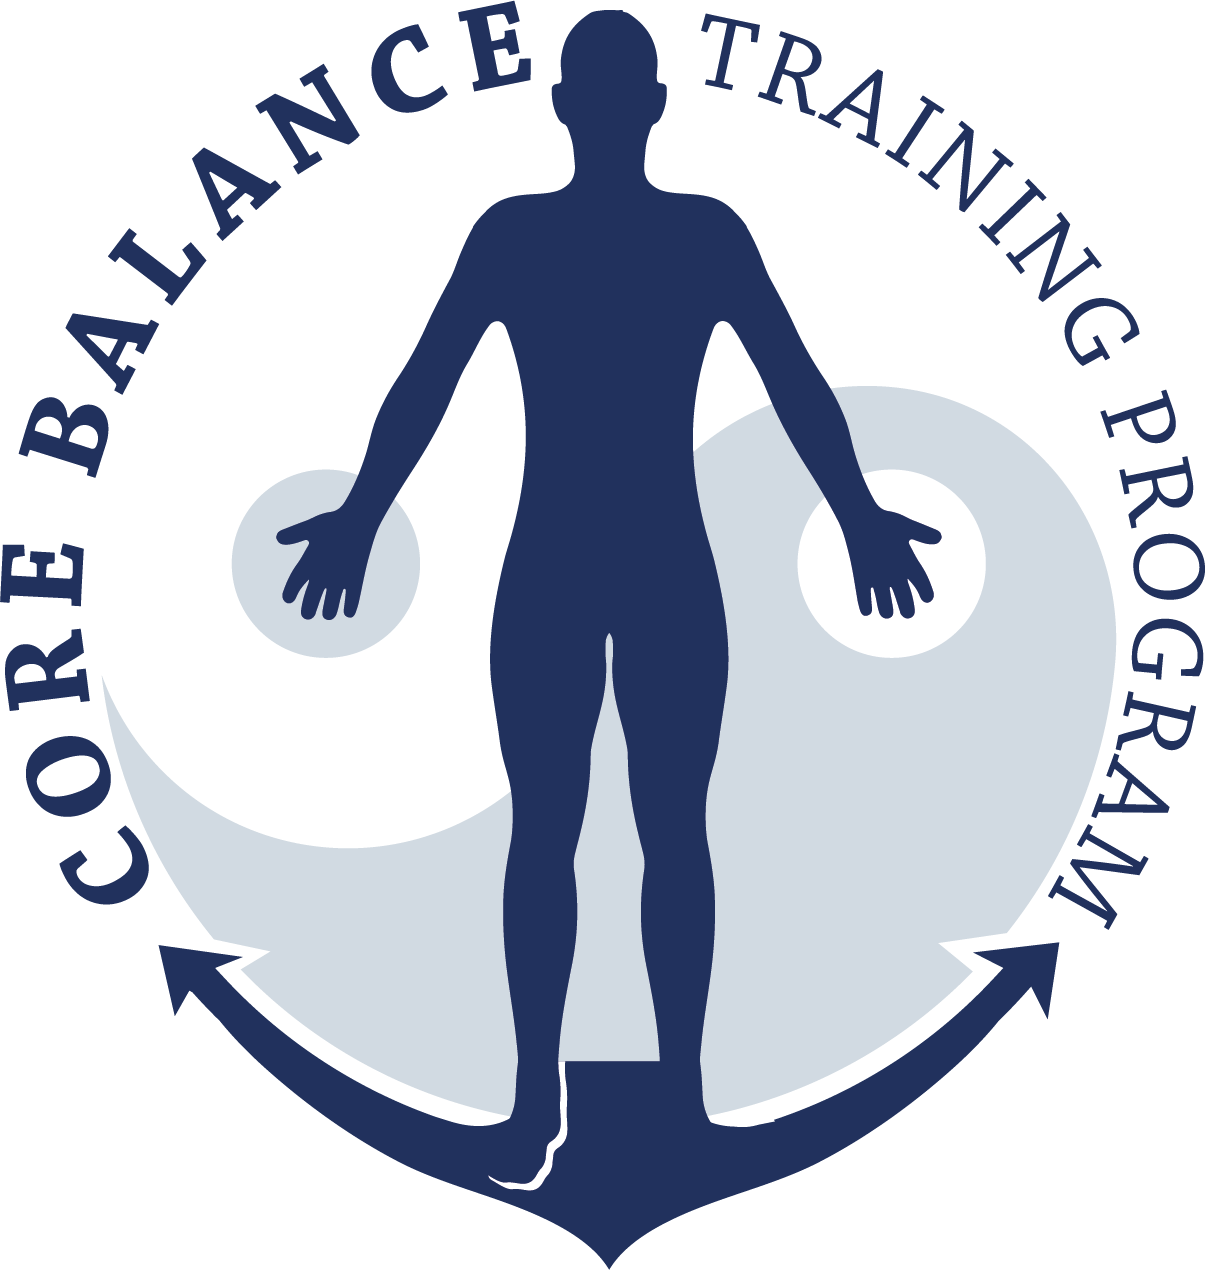 A simple and professional logo representing balance and strength within the human body - the foundation of life